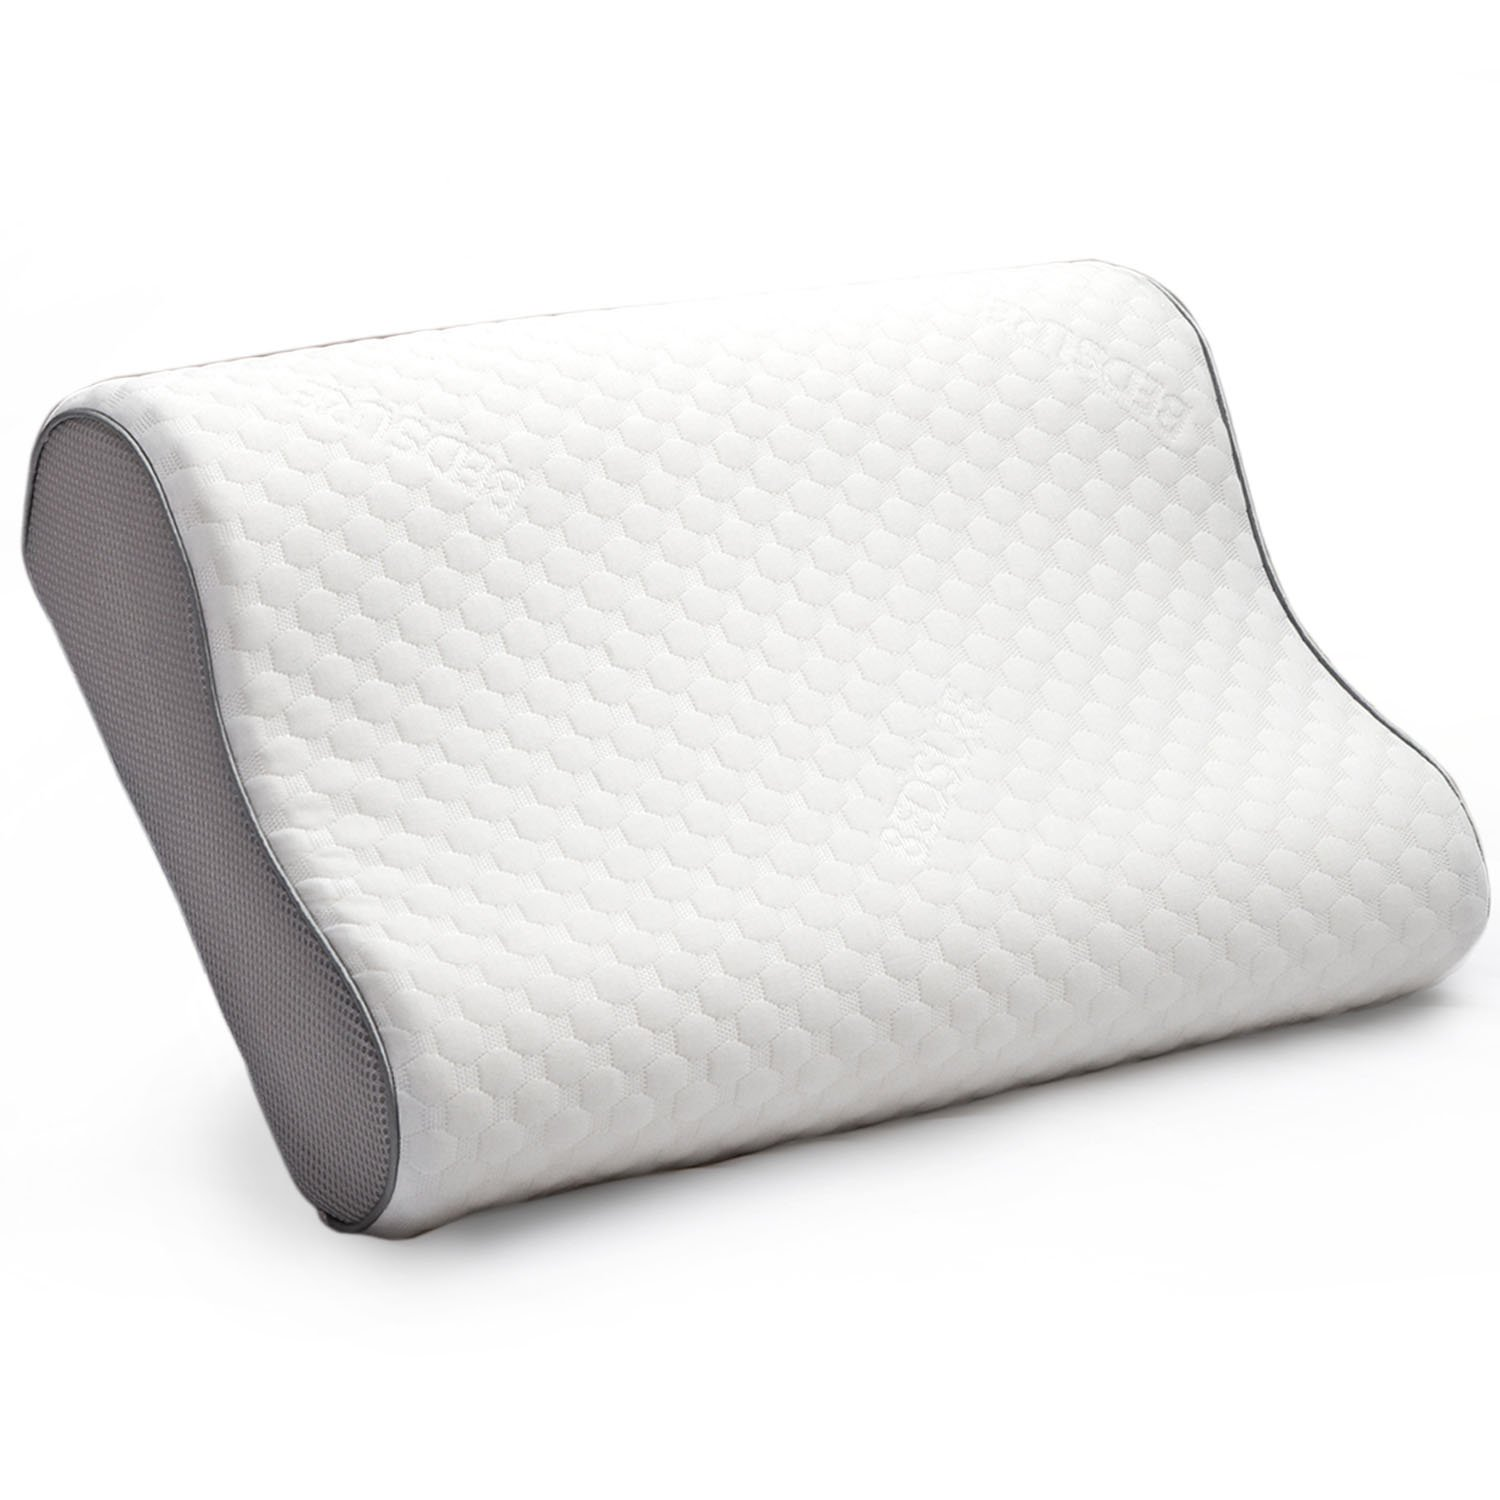 Bedsure Memory Foam Pillow Contour Pillow for side sleepers Neck Support Chiropractor sleeping Bed Pillow